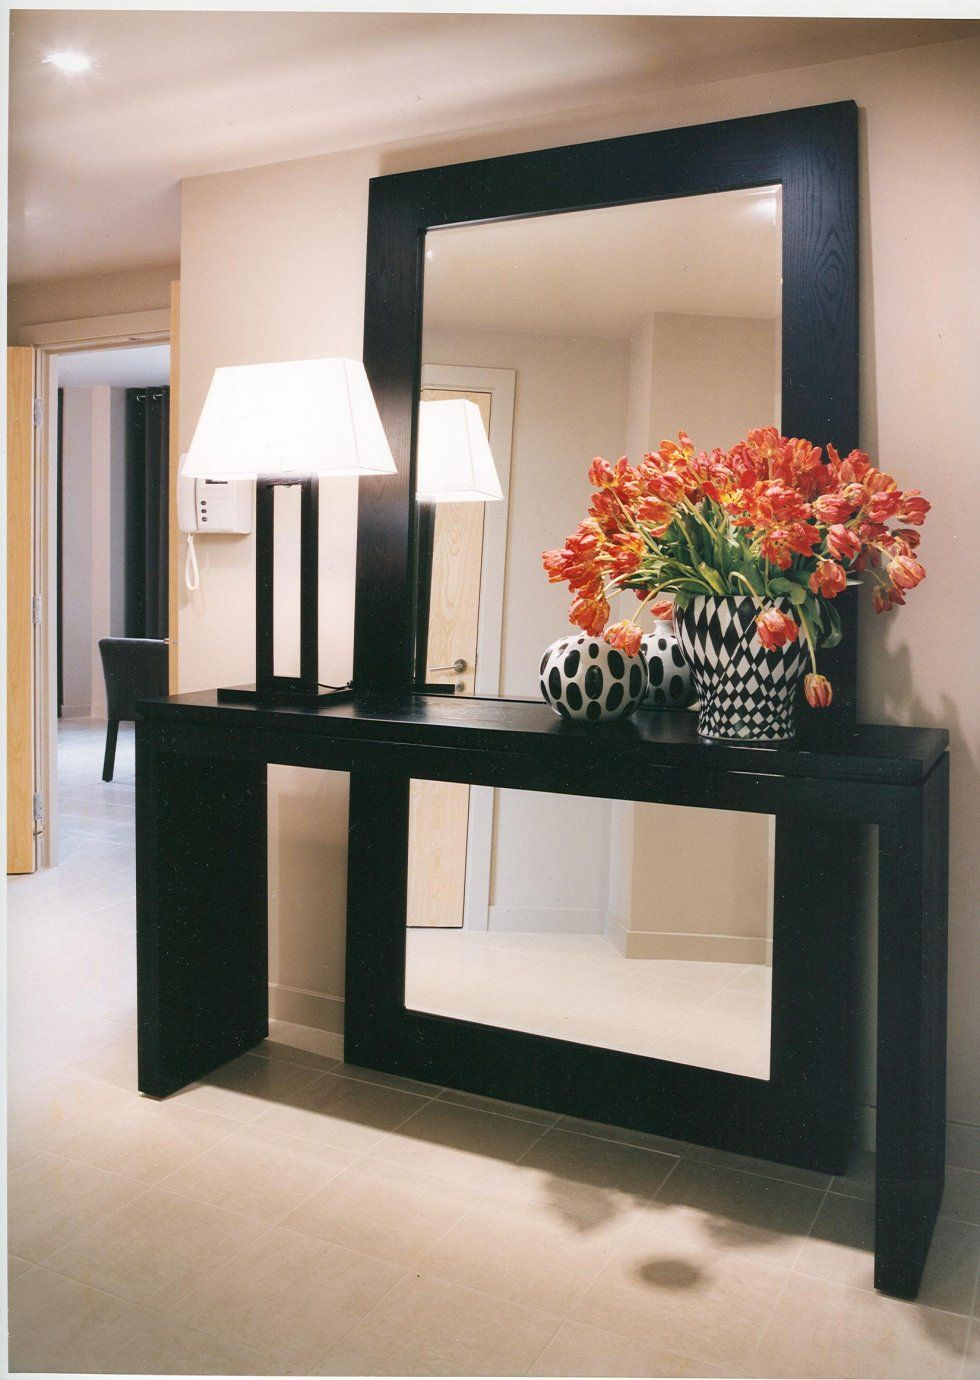 Full length mirror behind console table new york ny interior design by jo laurie design photo credit jo laurie design